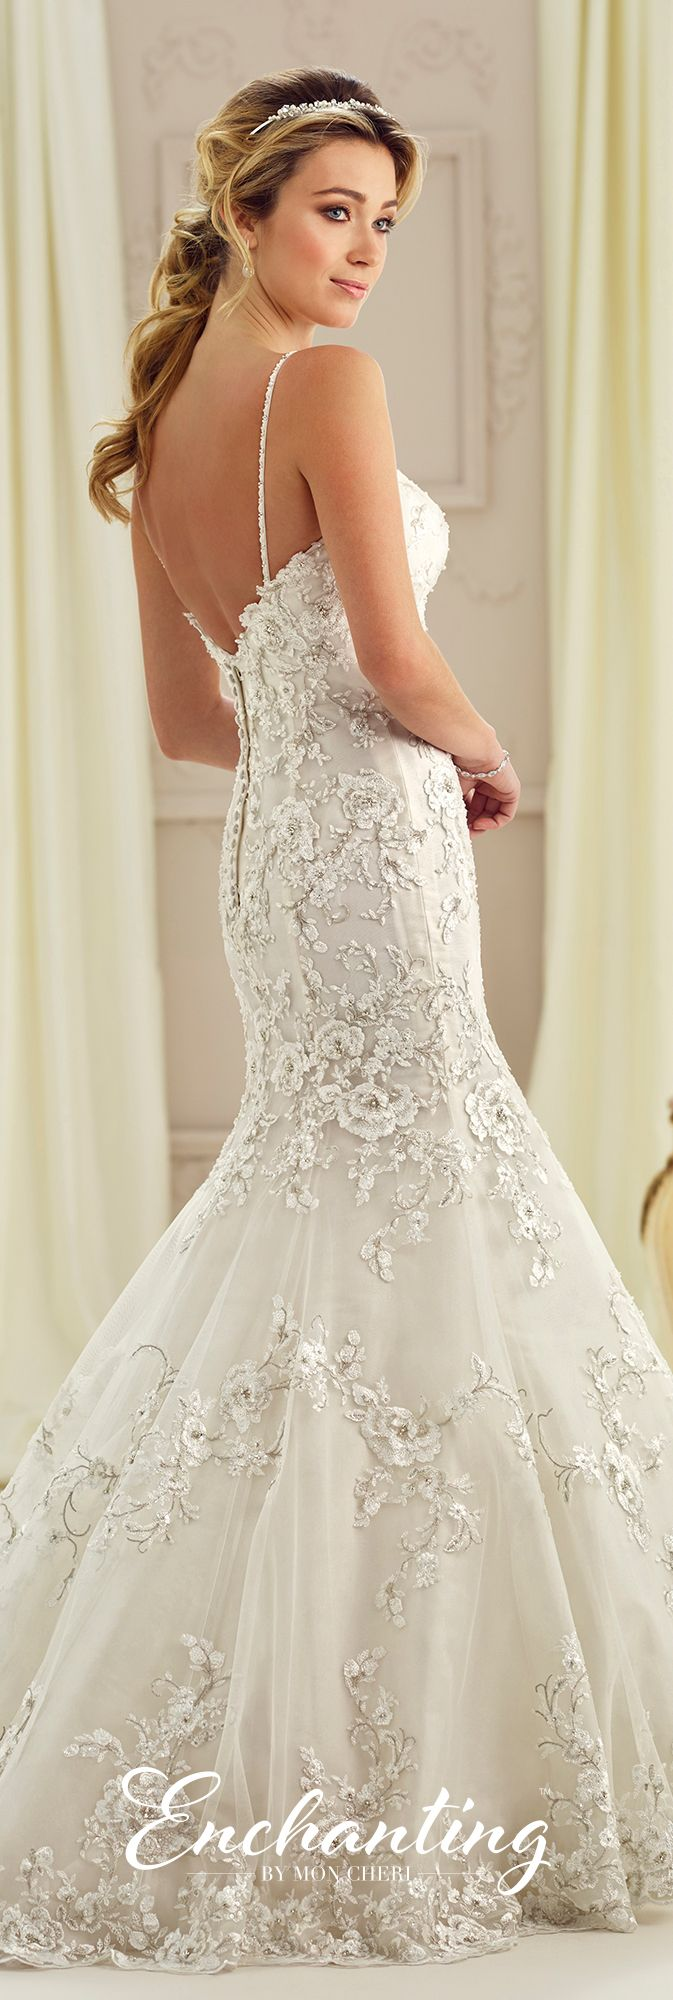 Enchanting by Mon Cheri Fall 2017 Collection - Style 217124 - sleeveless lace trumpet wedding dress with hand-beaded spaghetti straps